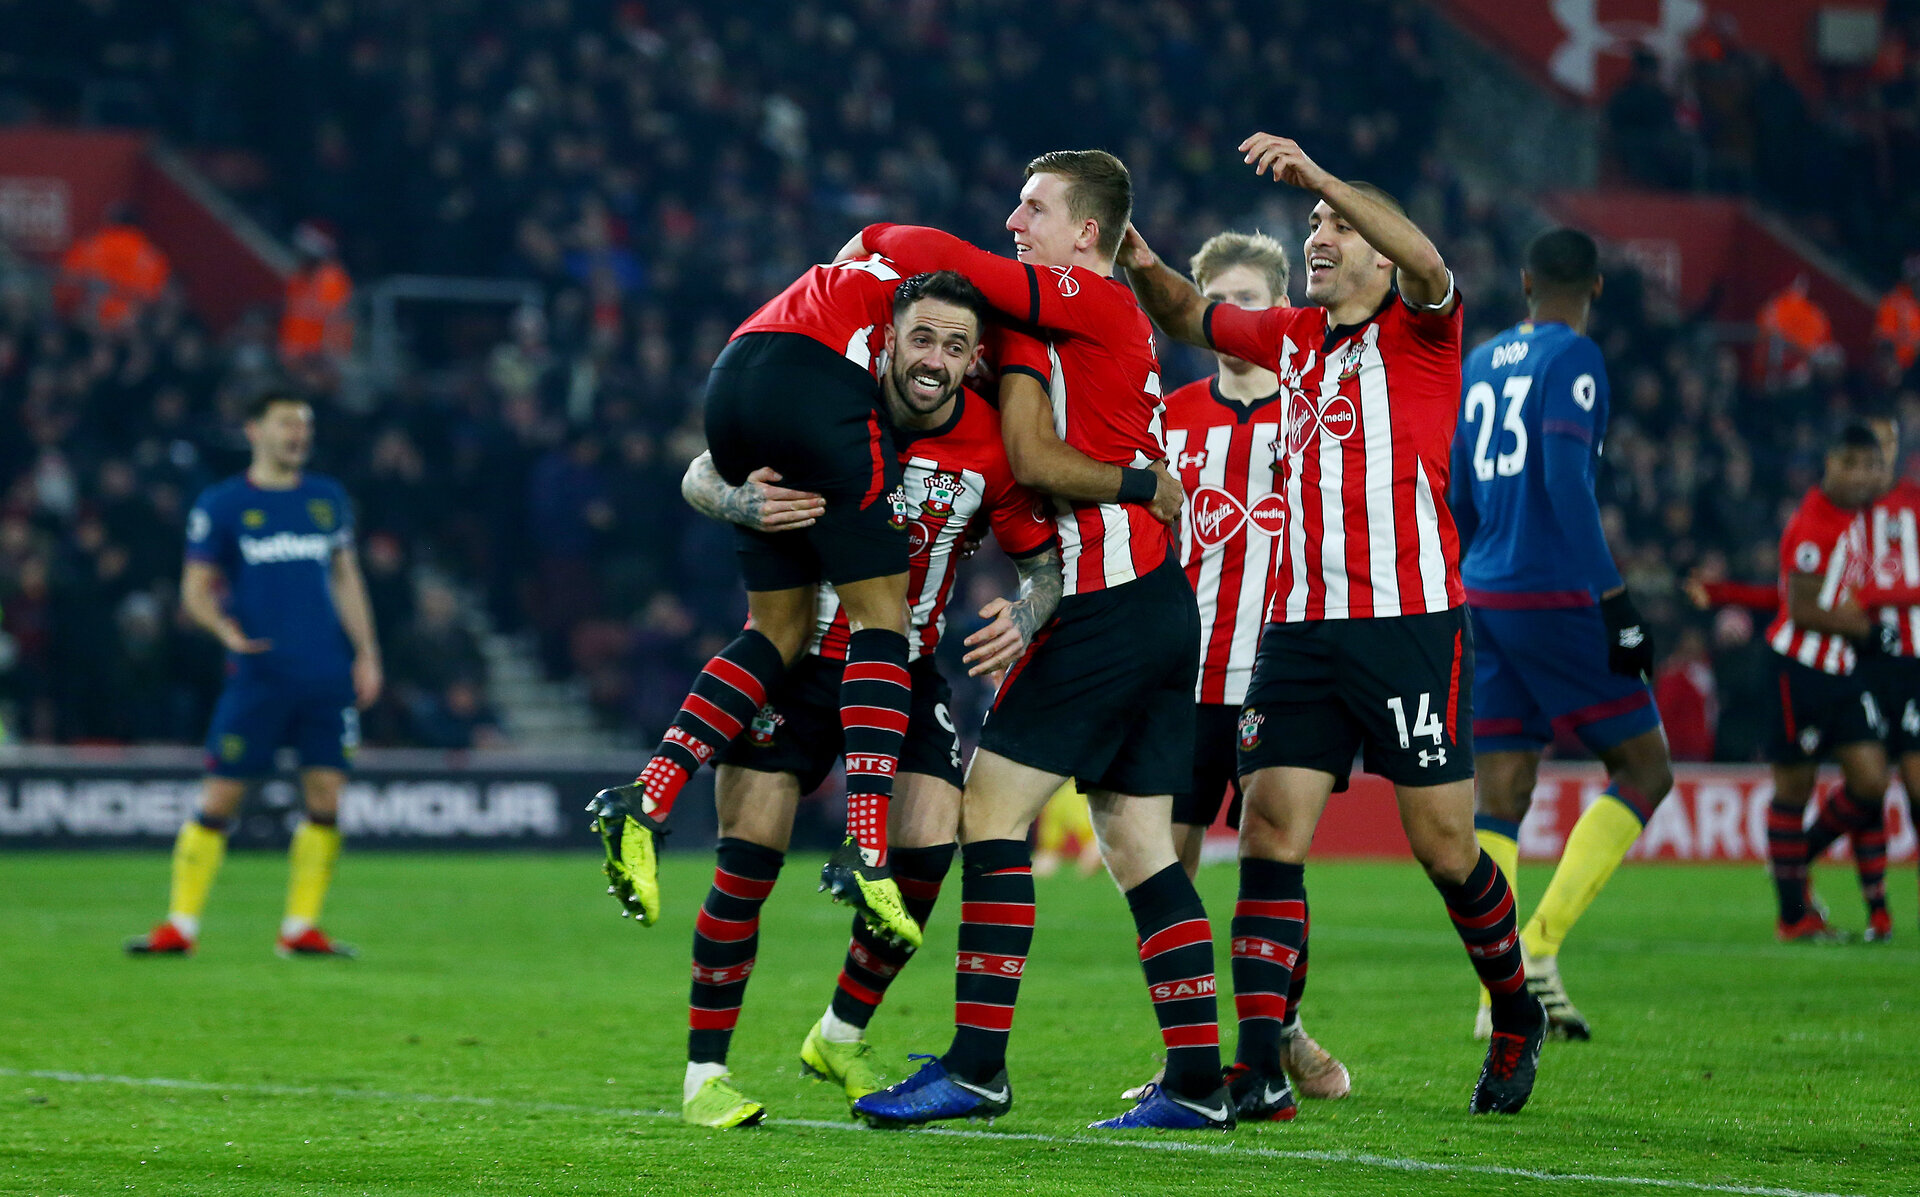 SOUTHAMPTON, ENGLAND - DECEMBER 27:  Nathan Redmond(L) of Southampton is lifted up by his team mates after opening the scoring during the Premier League match between Southampton FC and West Ham United at St Mary's Stadium on December 27, 2018 in Southampton, United Kingdom. (Photo by Matt Watson/Southampton FC via Getty Images)